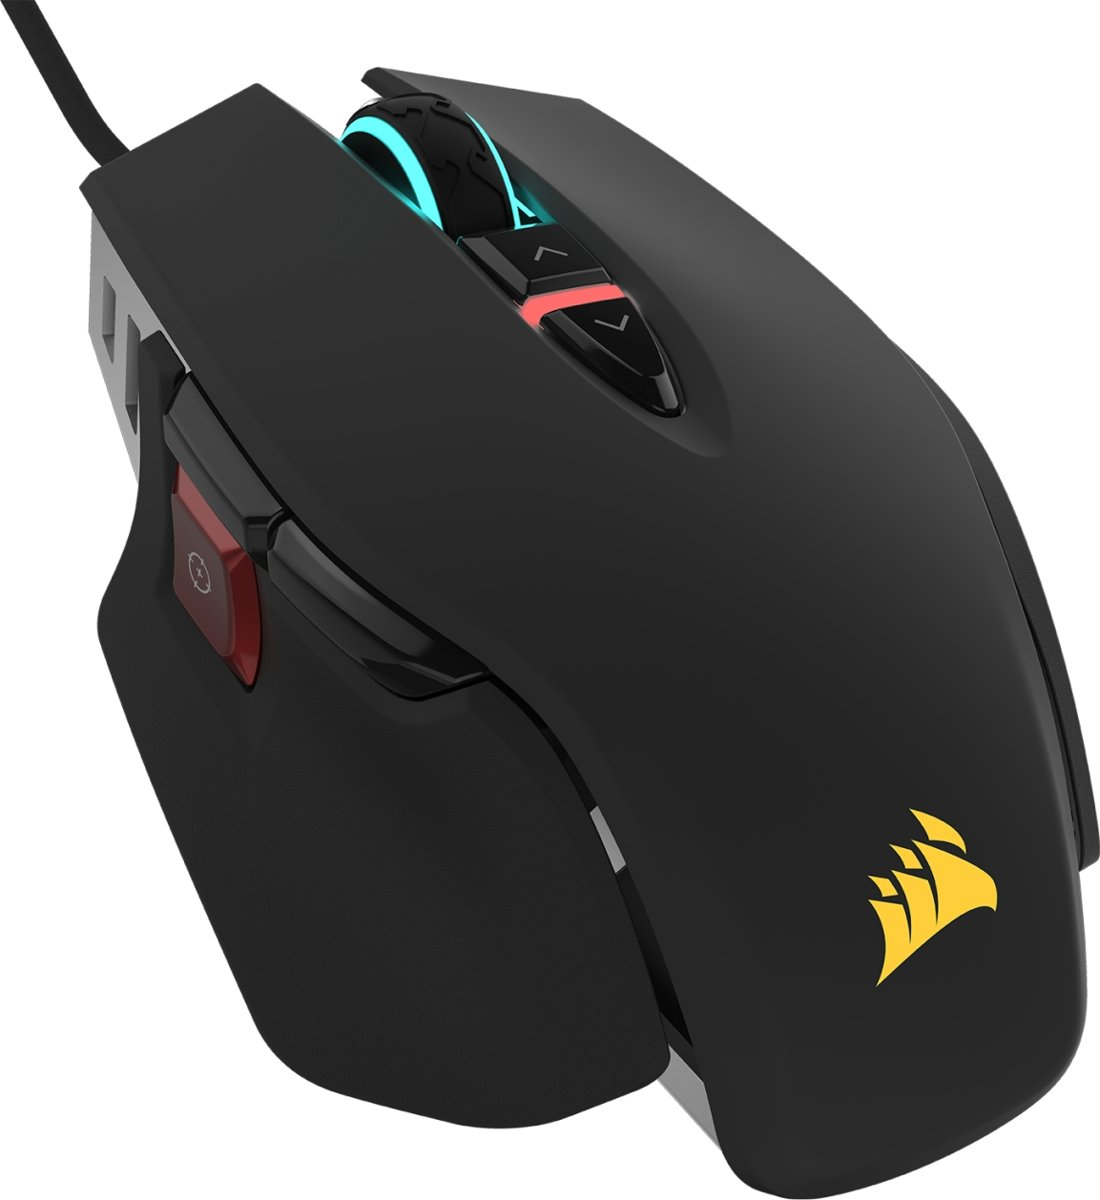 M65 Elite RGB - Gaming Muis - 18000 DPI - Zwart